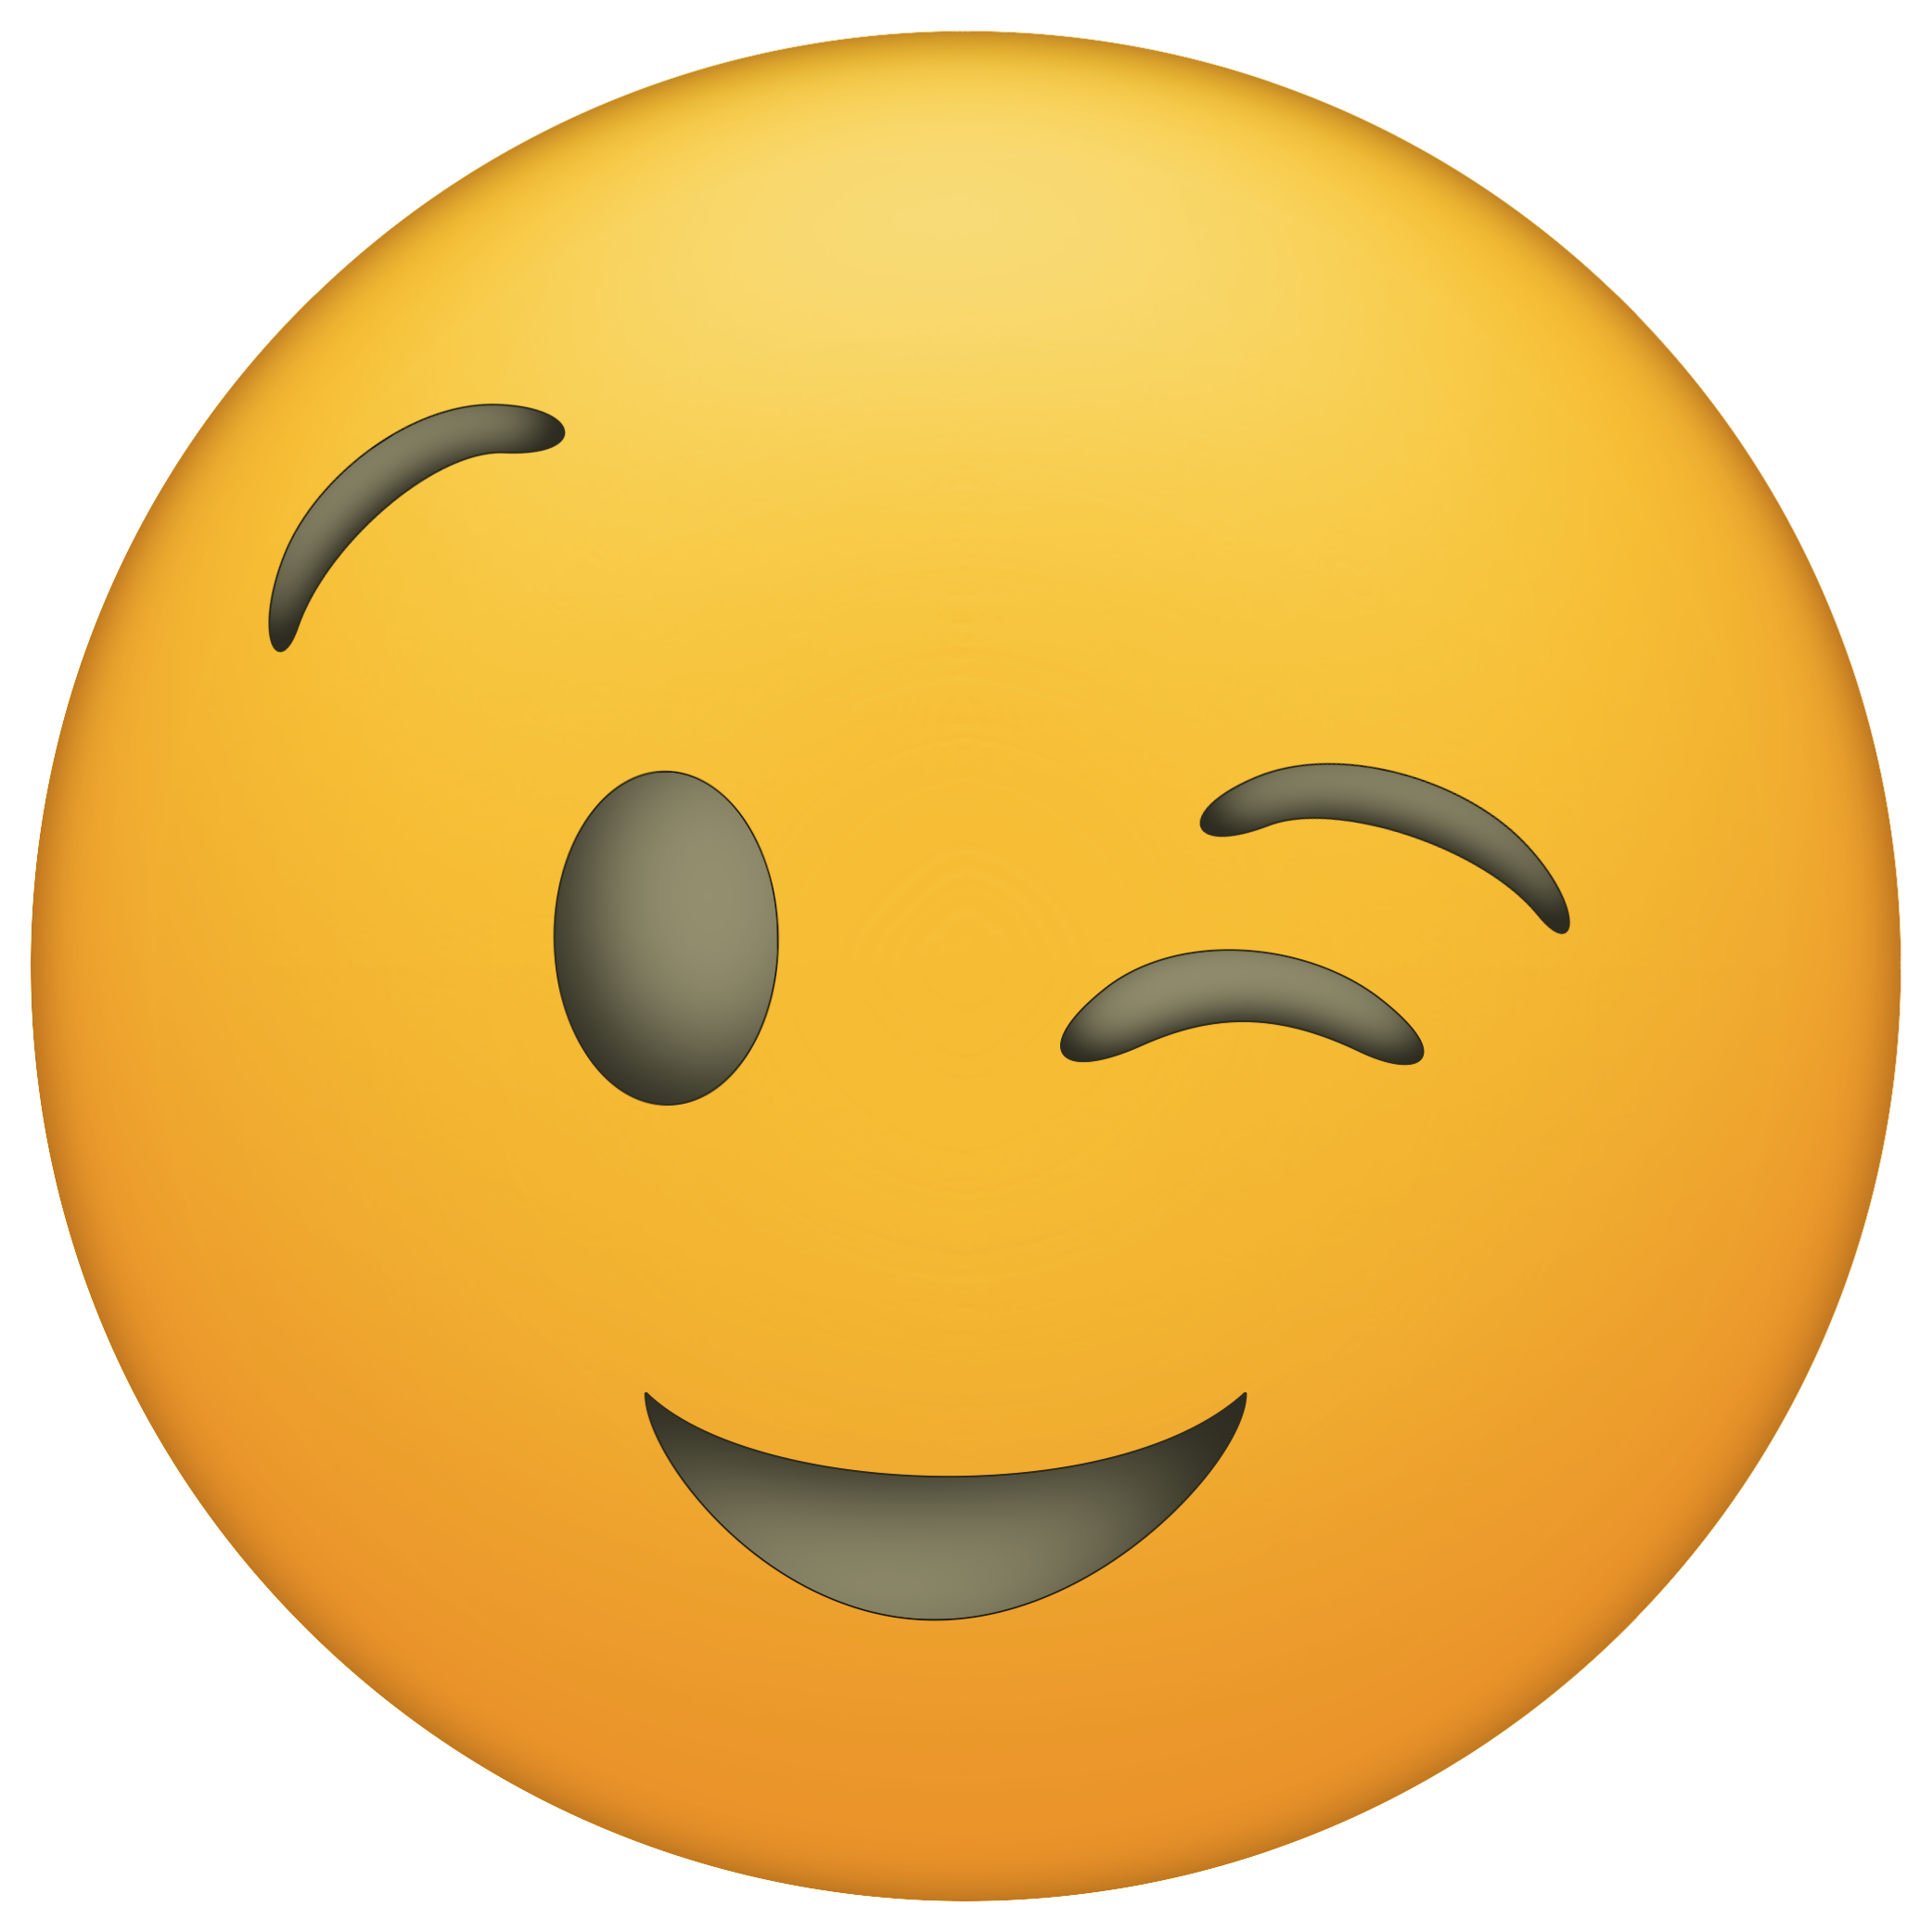 Winky face png. Www papertraildesign com wp